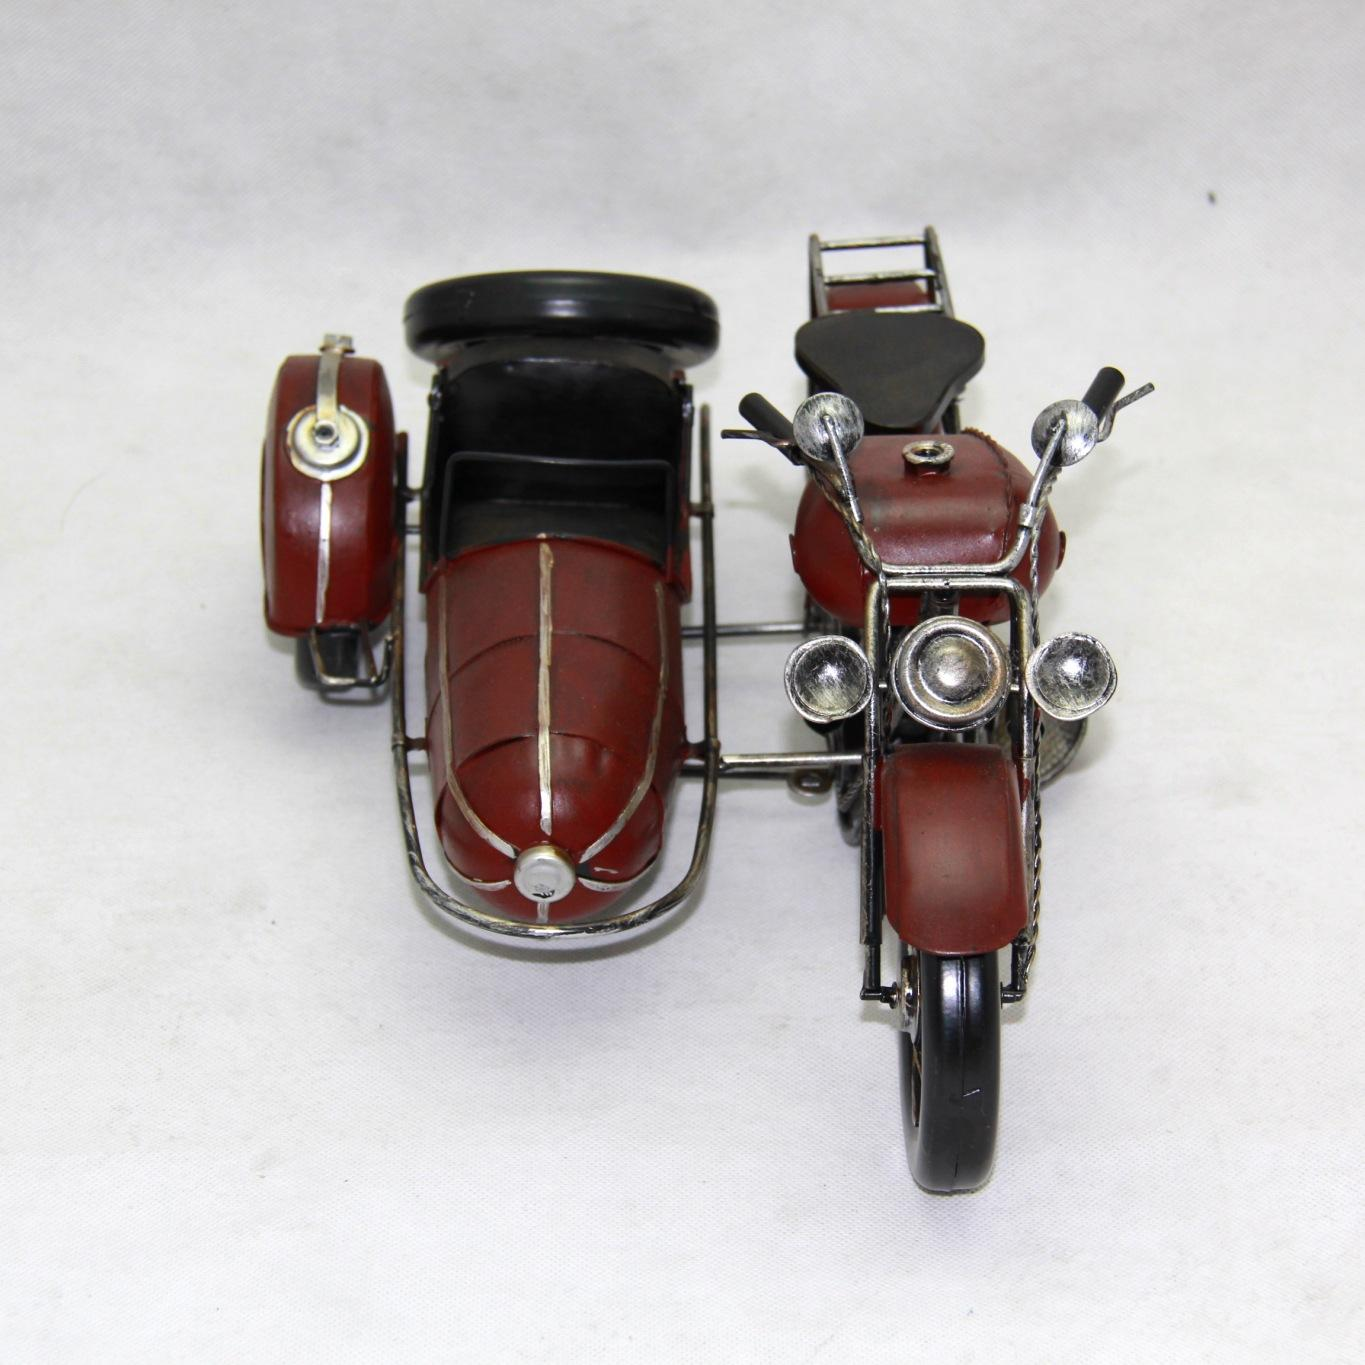 2018 Tinplate Military Motorcycle Model, Hand Made Motor Tricycle Toy,  Furniture Decoration, Work Of Art , Personalized For Gift, Collecting From  Edwardtang ...